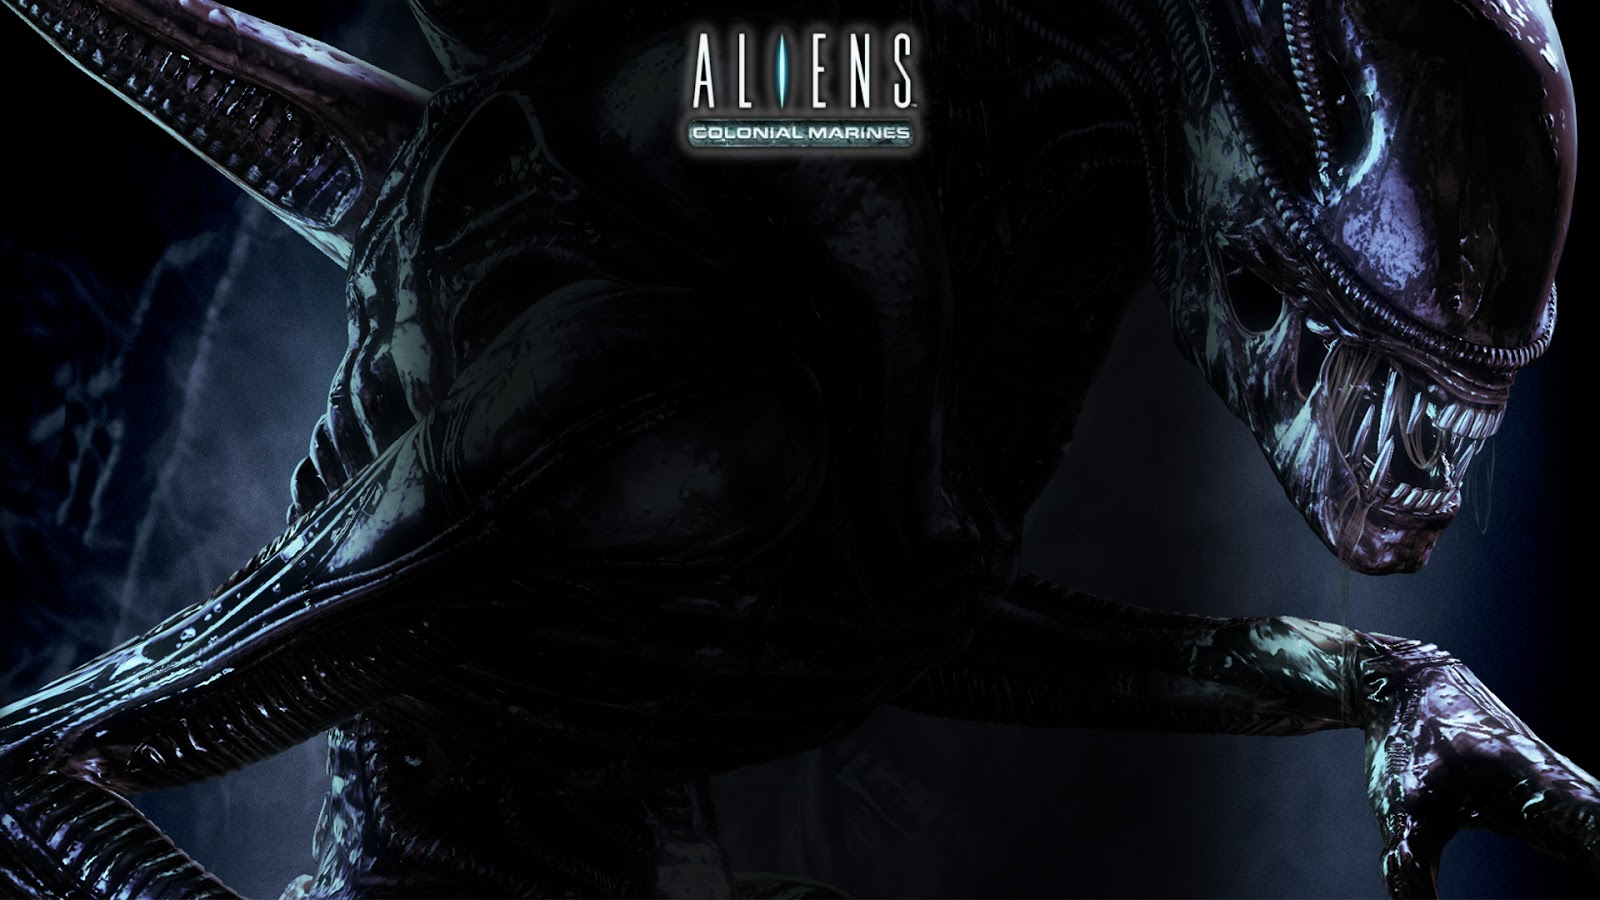 Top latest Alien hd wallpapers Download some of the best 1600x900